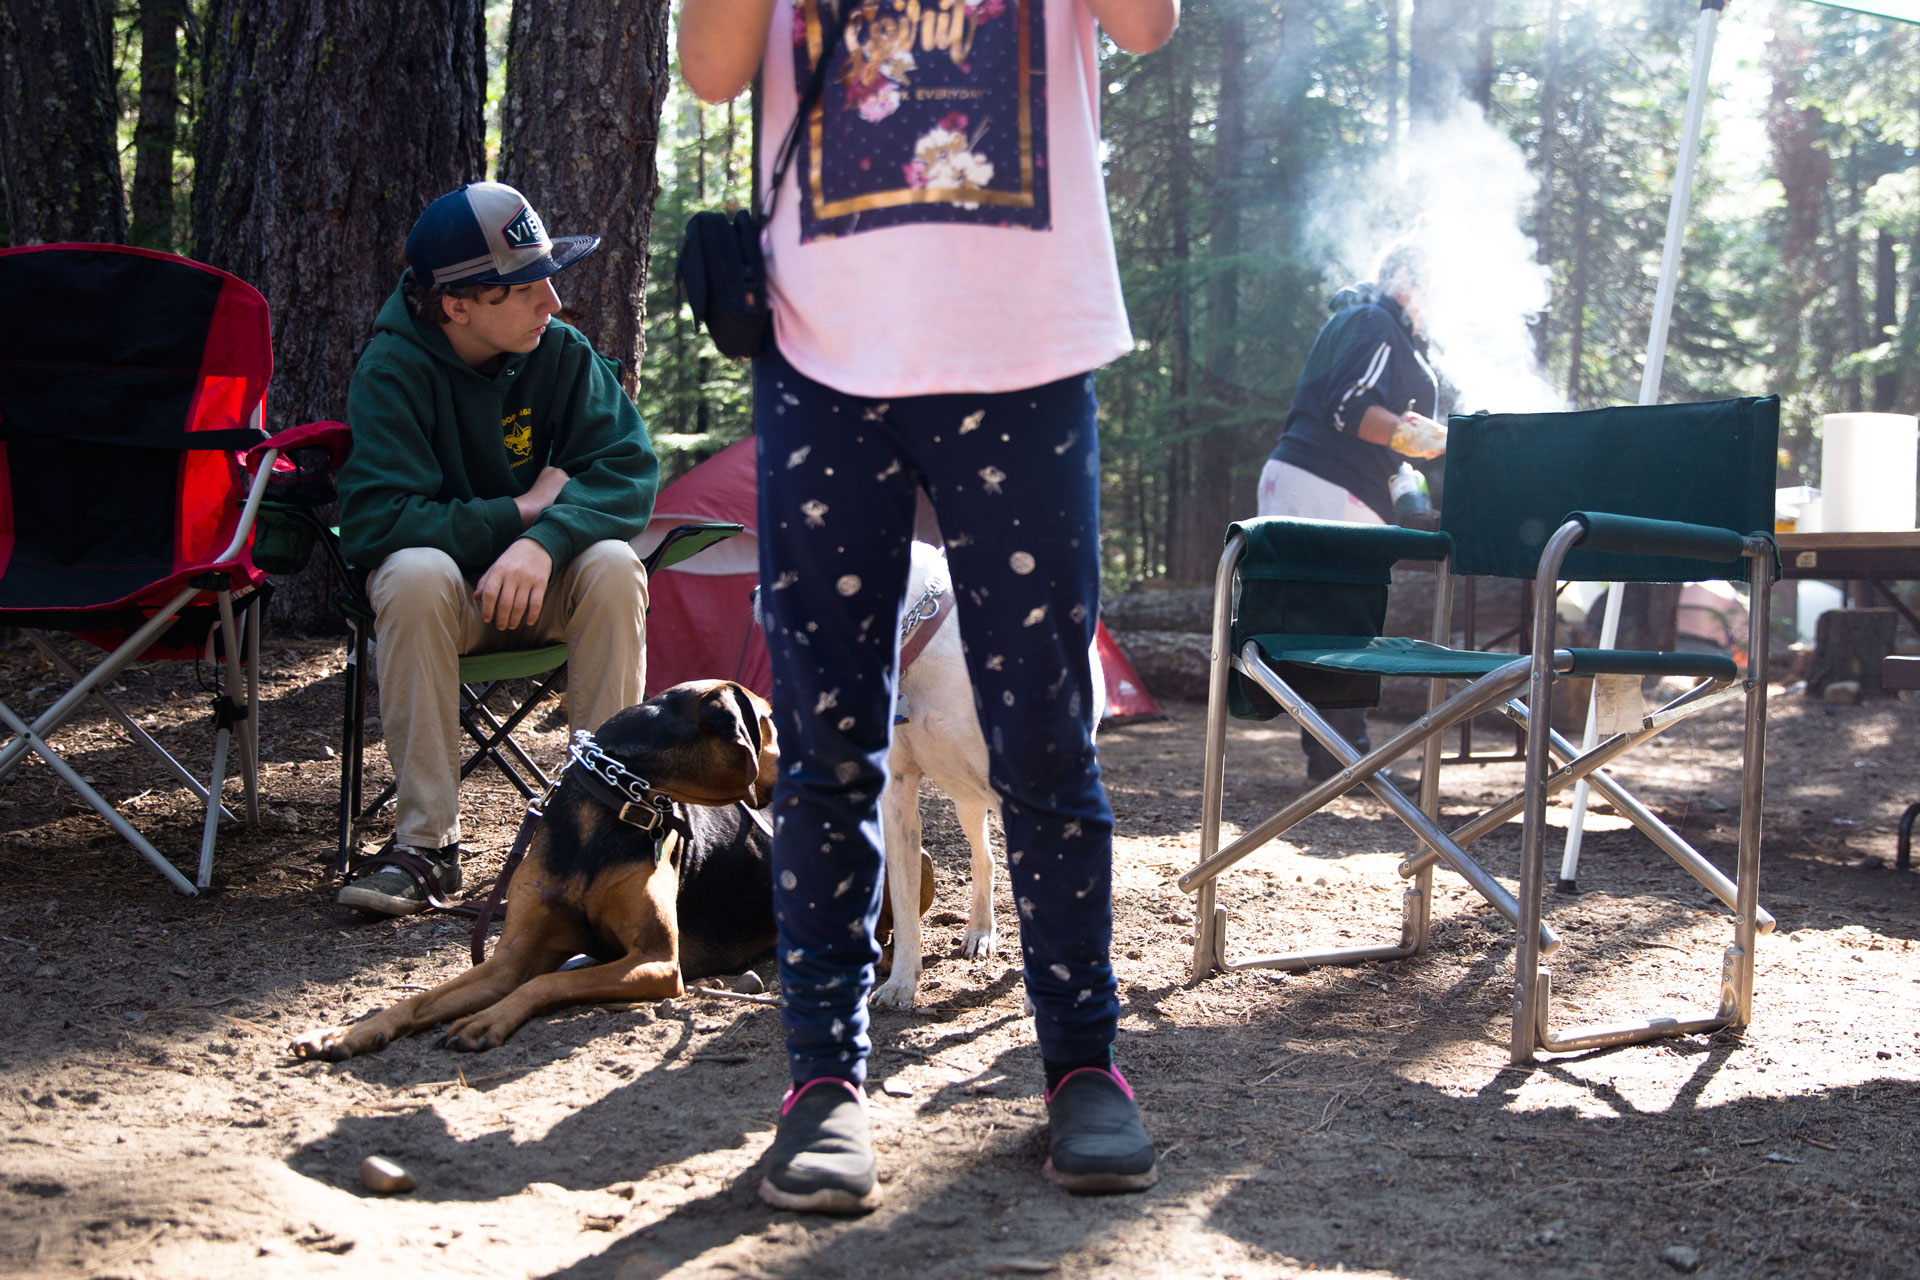 girl standing in front and dogs laying down behind her on a camping trip. Boy sitting in chair looking to the side